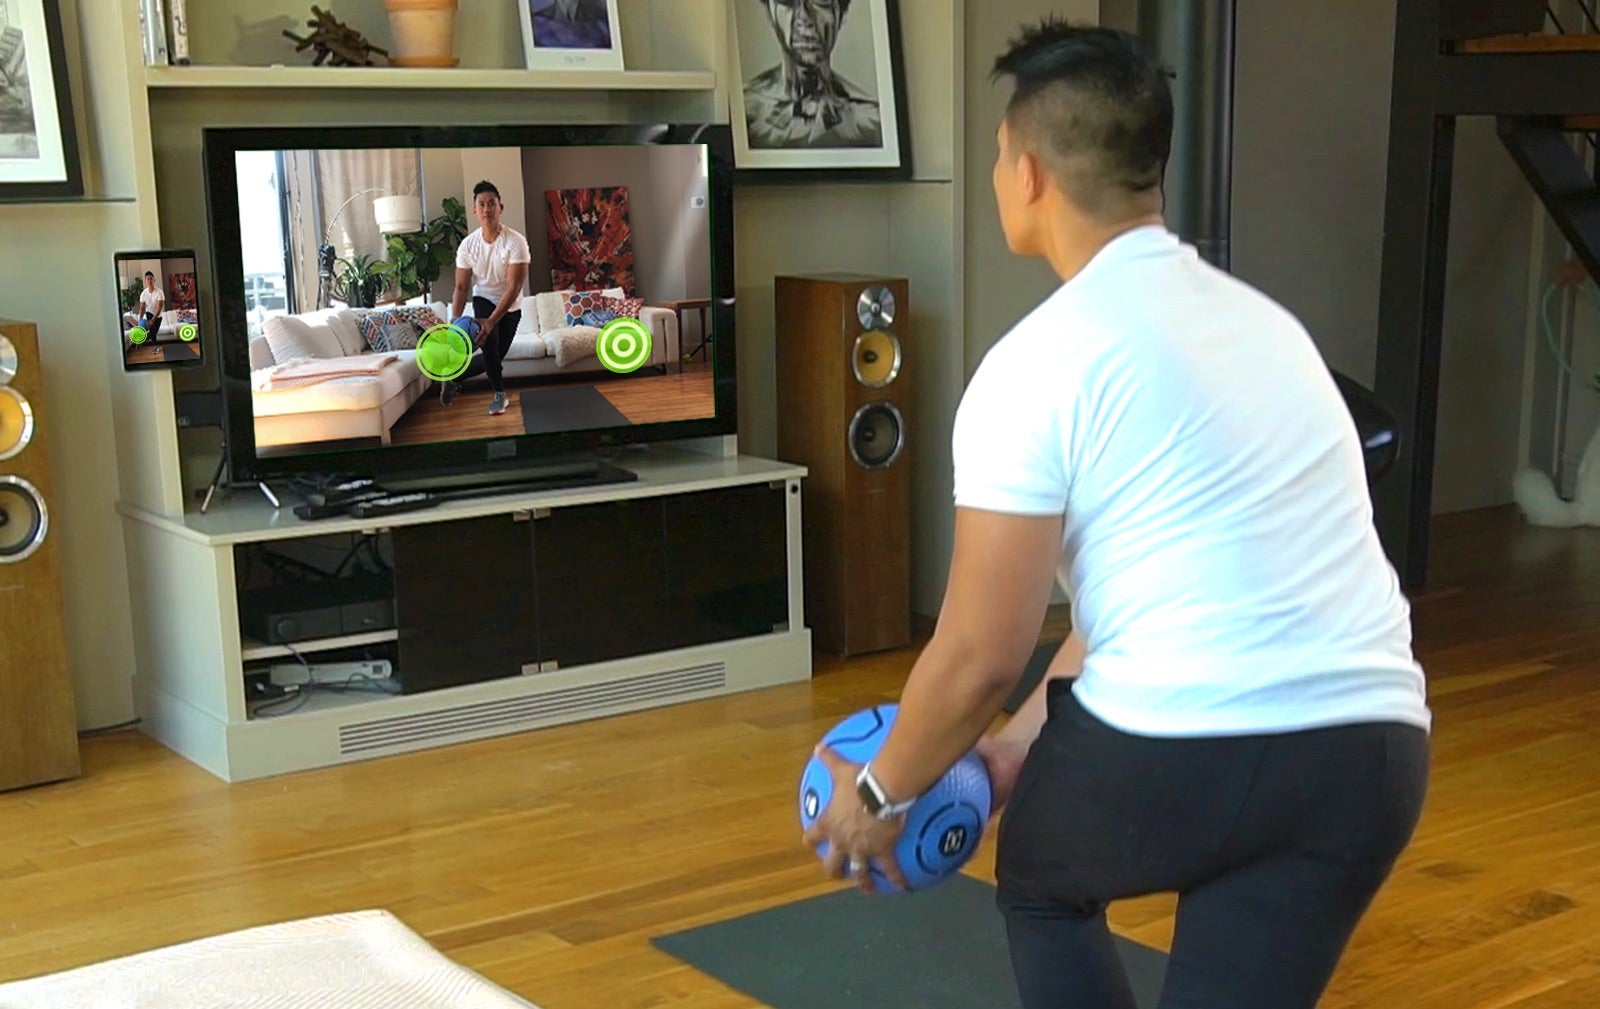 person using smart ball in living room with themselves on the screen to show where they should move the ball